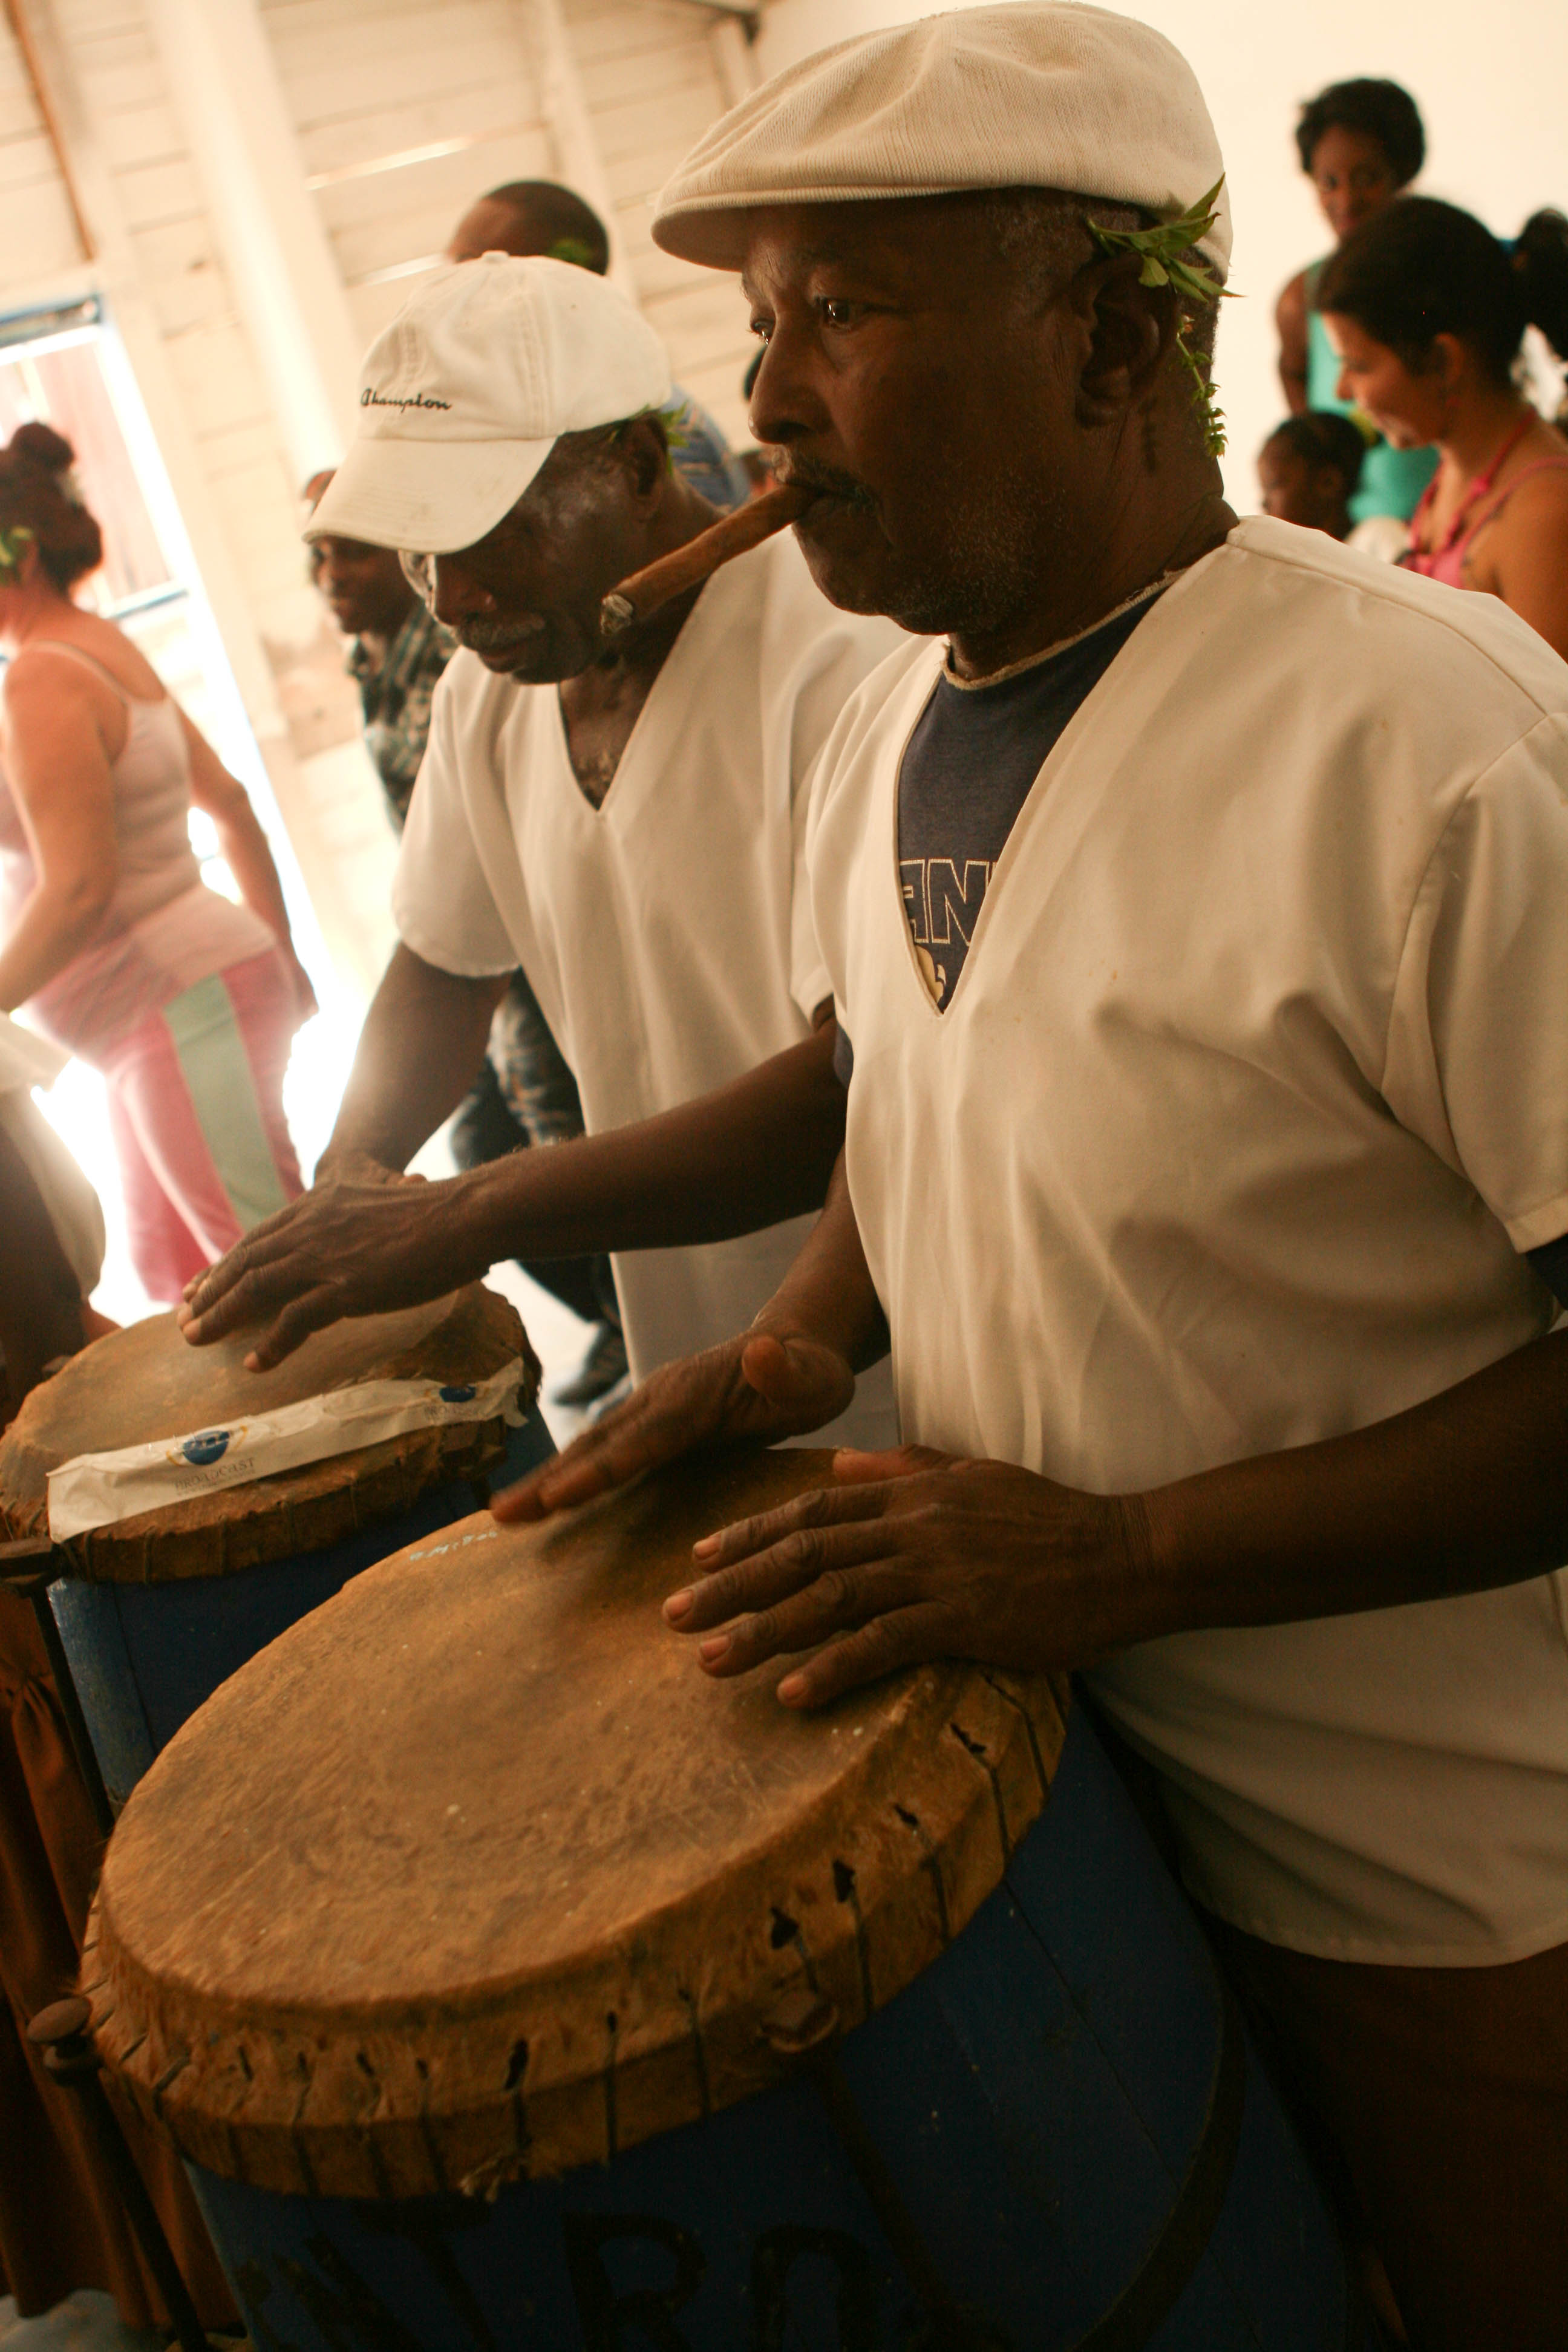 Drummers at the Casino Congo play congos during a Palo Monte ceremony in Lajas, Cuba. Lajas, Cuba. January 4th, 2013 (Photo by Matt Lambert)